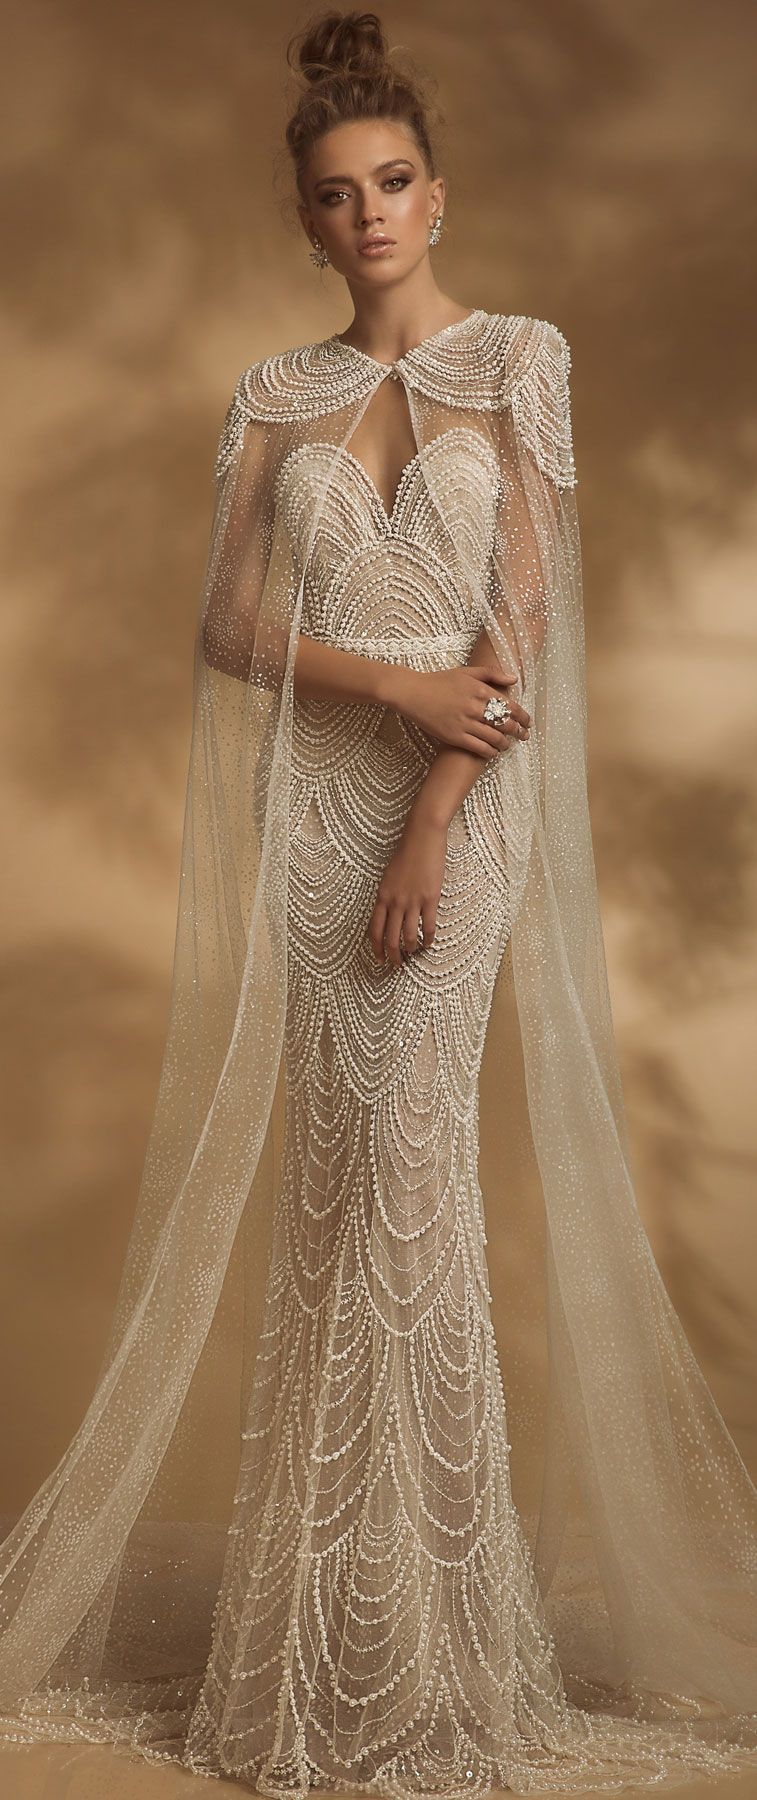 Wedding Dress Inspiration #weddingdress